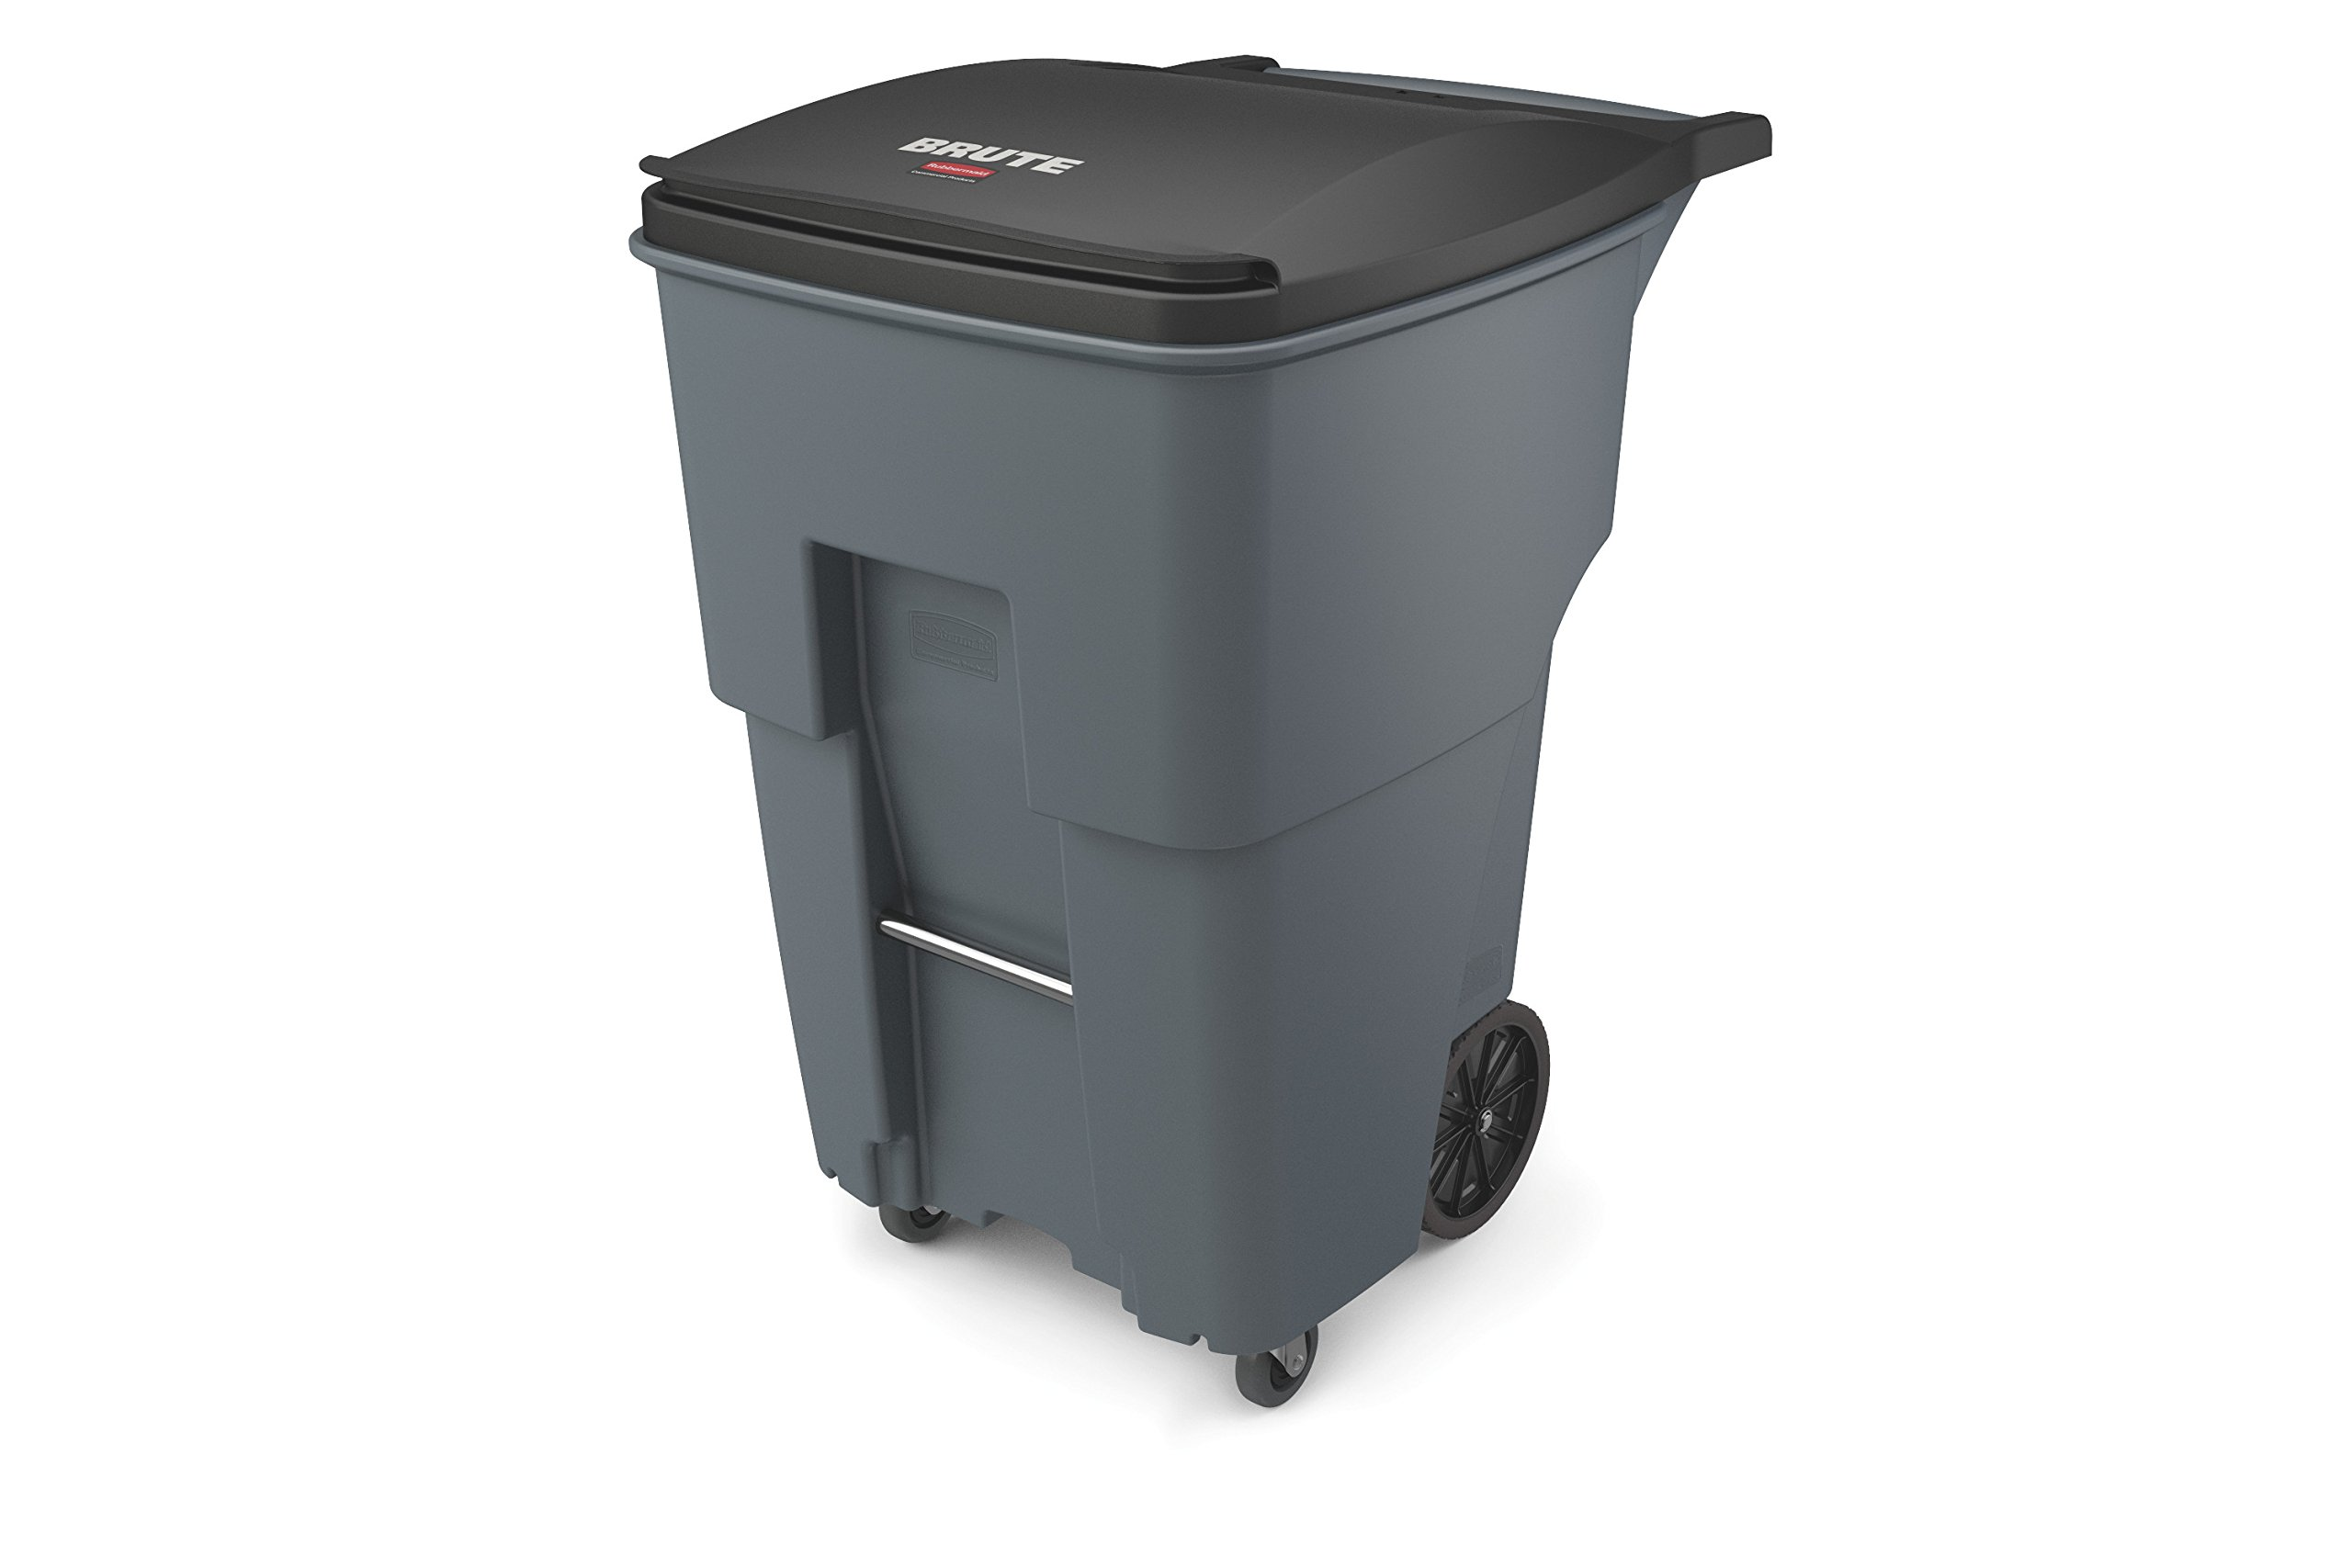 Rubbermaid Commercial 1971994 Brute Rollout Trash Can with Casters, 95 gal/360 L, 46.020'' Height, 28.600'' Width, Gray